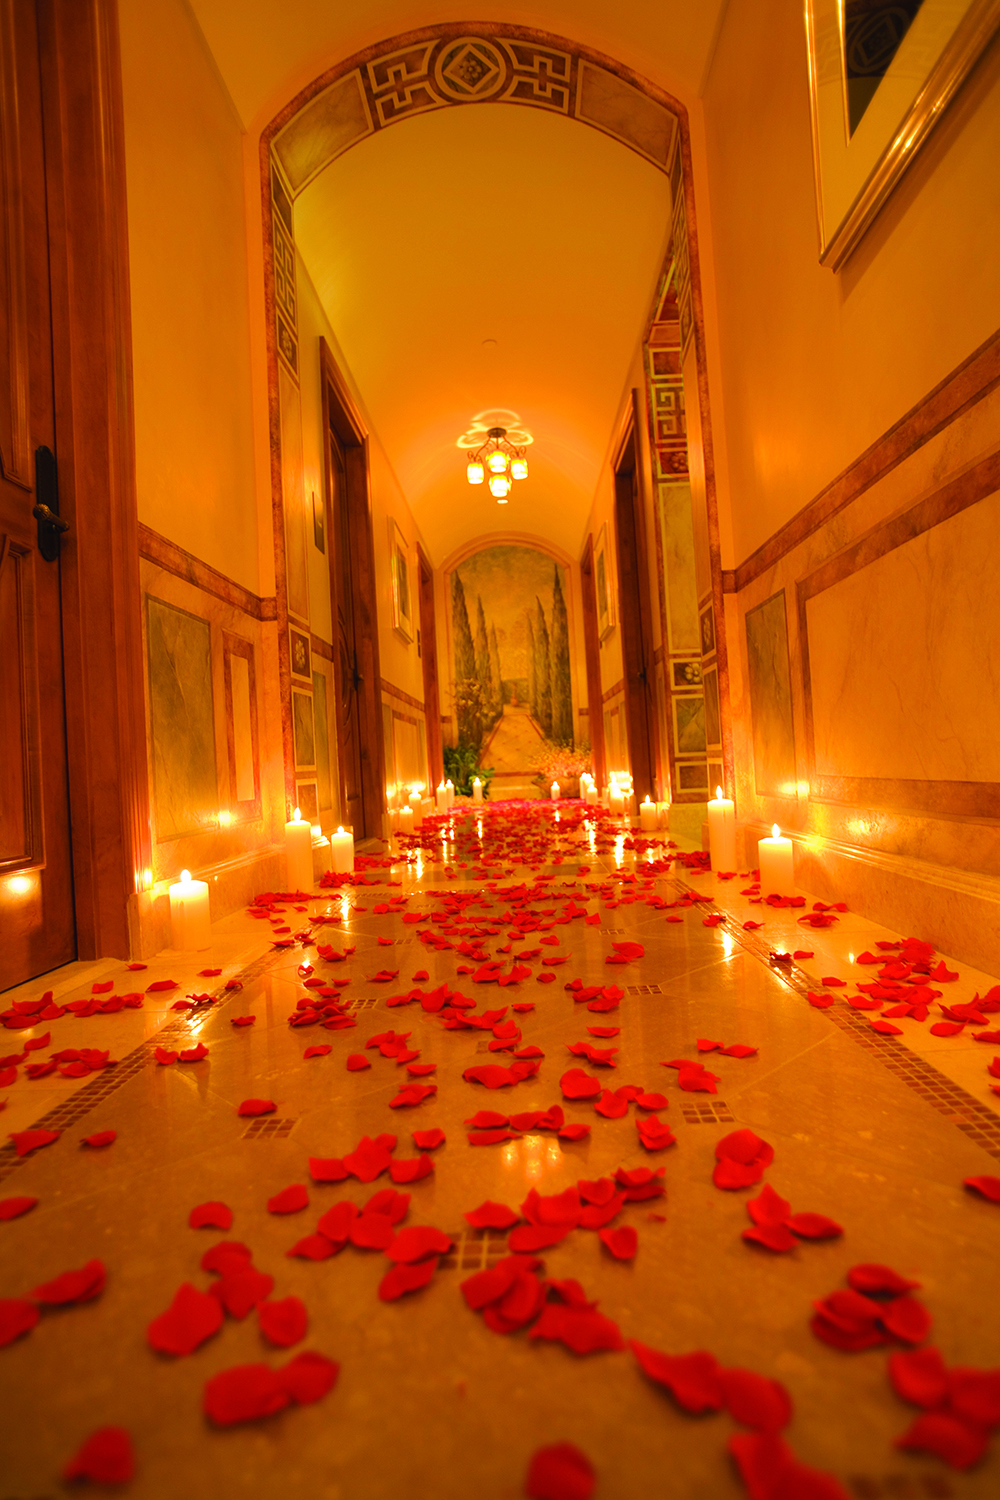 The candlelit hallway leads guests on their spa journey.